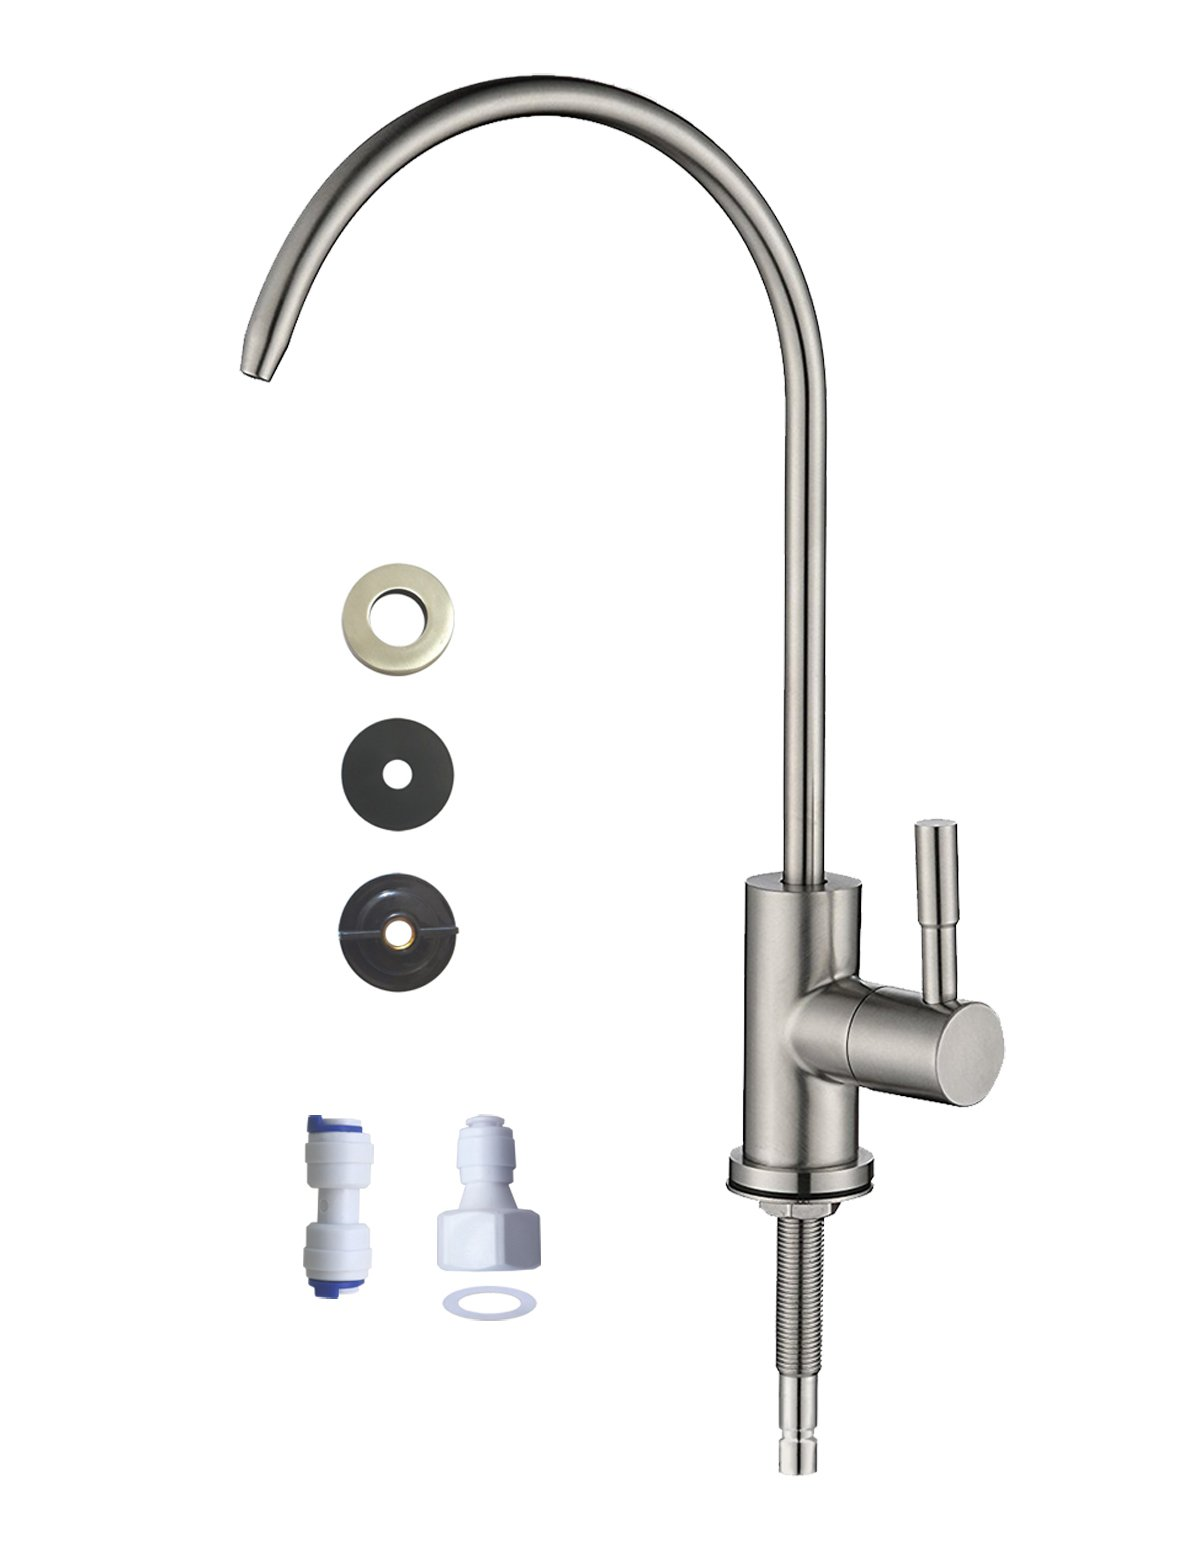 Water Faucet, Kitchen Sink Faucet Beverage Faucet Reverse Osmosis Faucet for Drinking Water Purifier Filter Filtration System, 1/4-inch Tube, Lead-Free, Brushed Stainless Steel By wholev